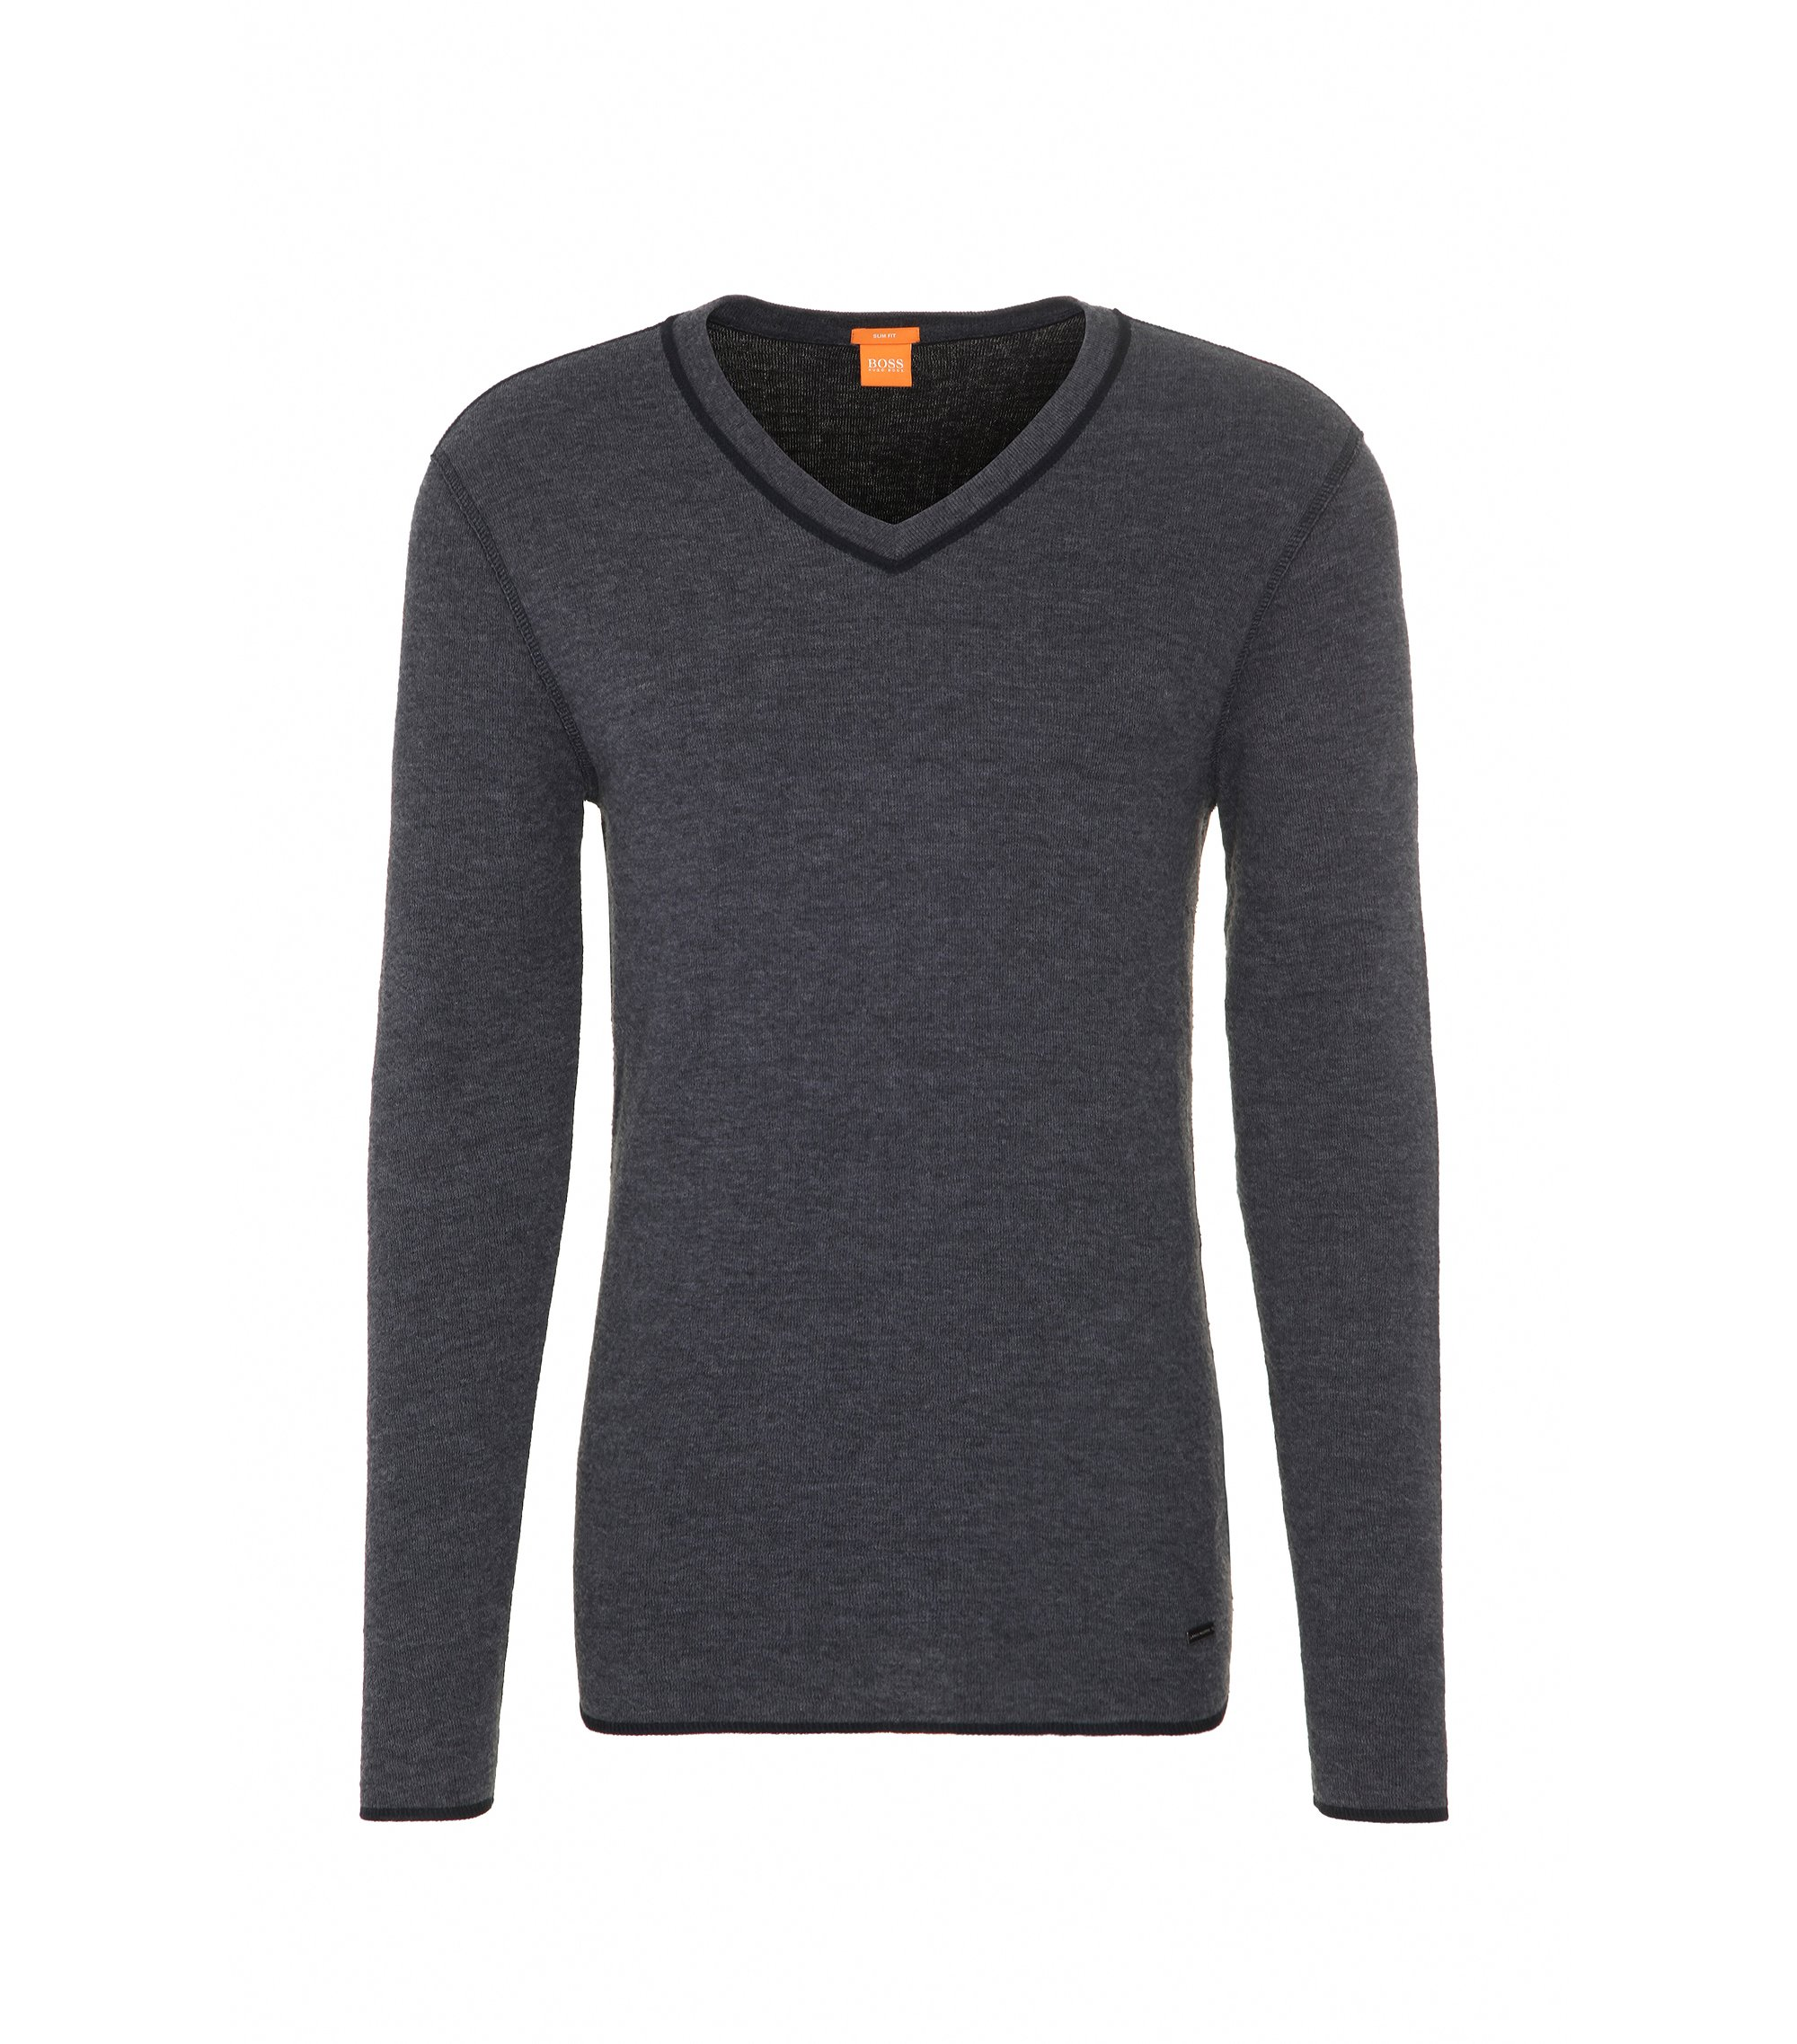 Slim-fit sweatshirt in double-faced cotton-blend jersey, Black